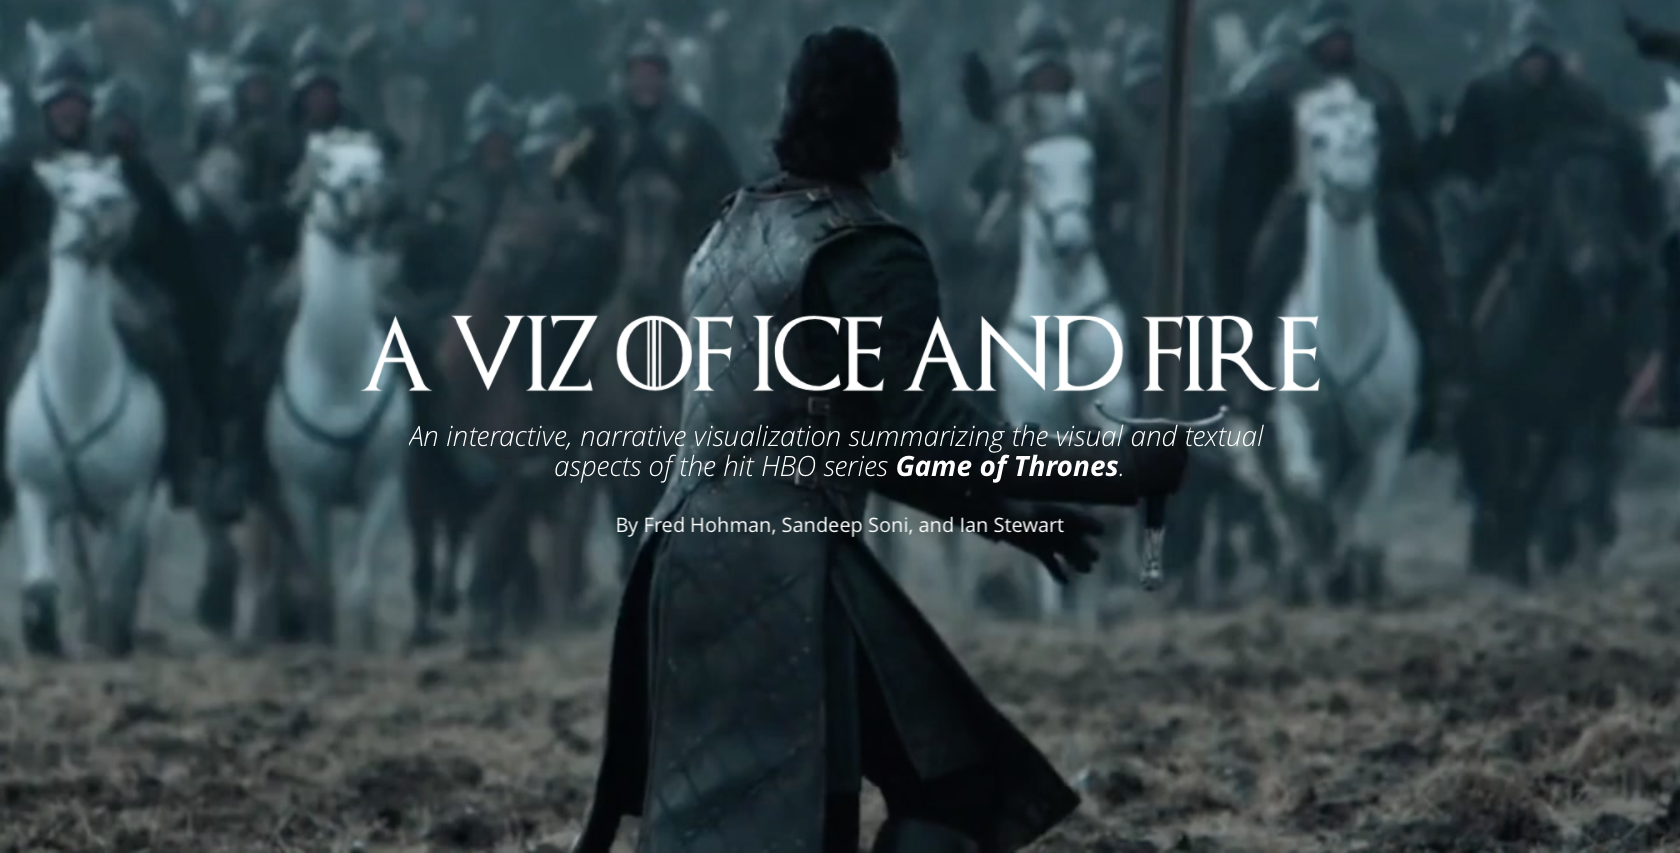 A Viz of Ice and Fire.